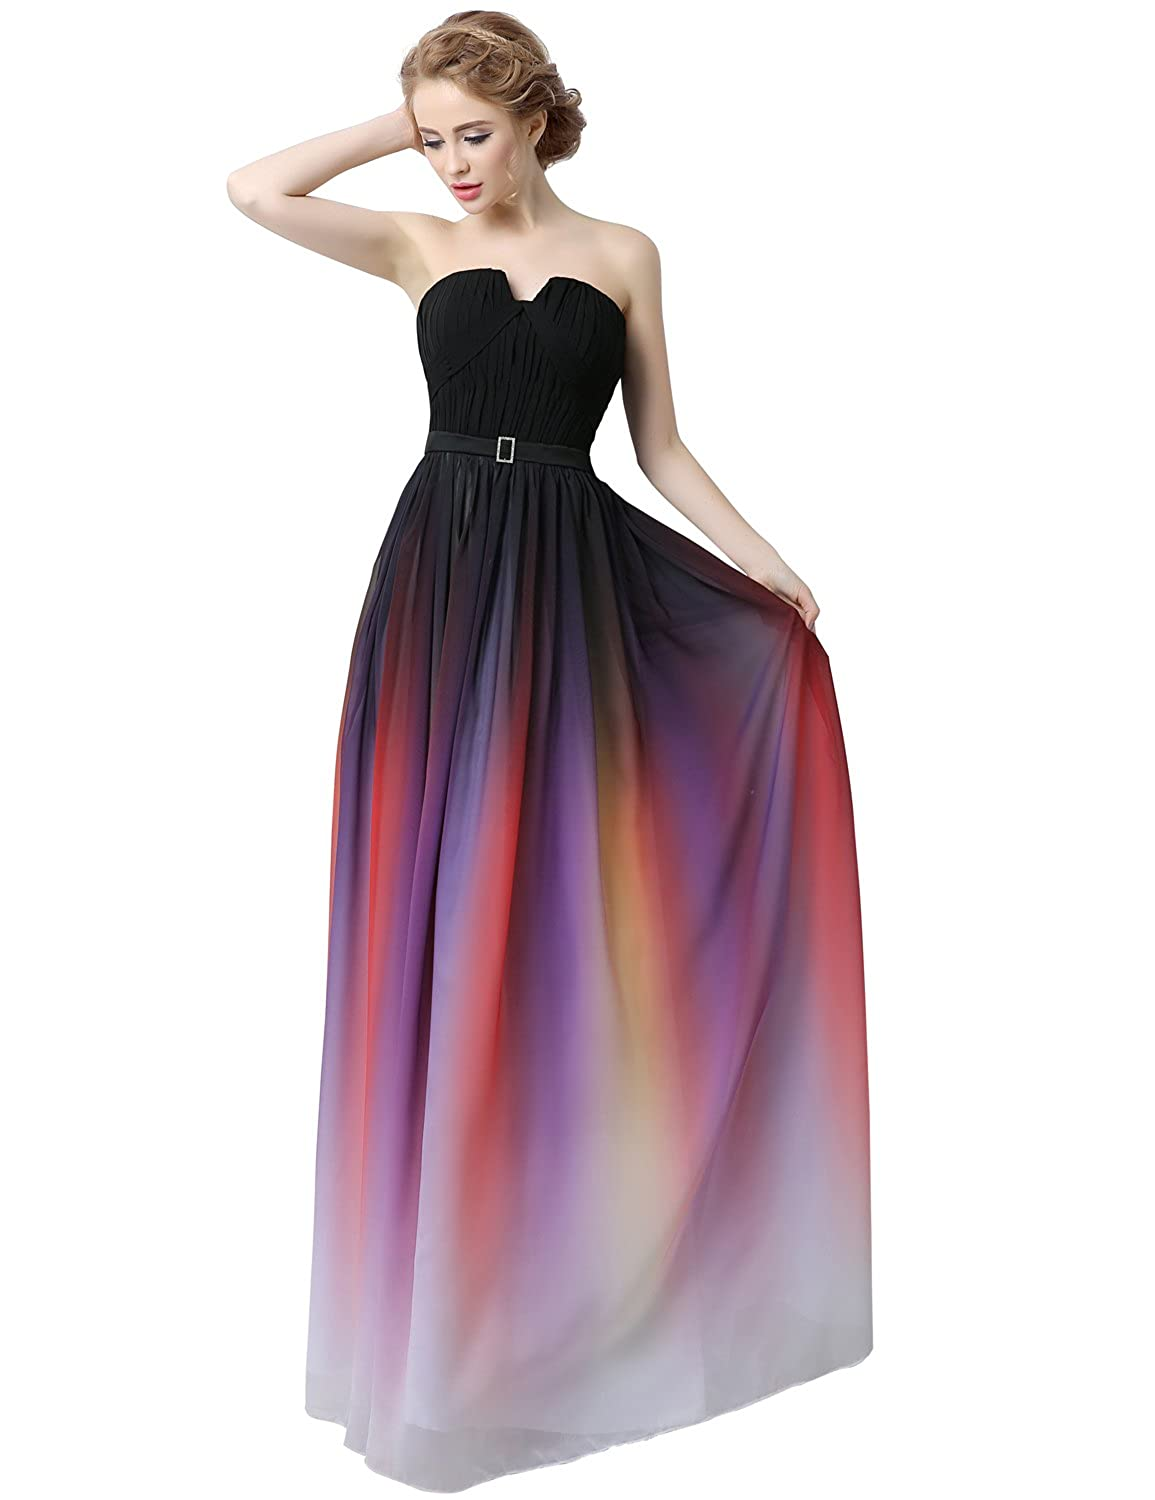 Clearbridal Women's Formal Chiffon Prom Dress Gradient Color Bandage Maxi Dress Bridesmaid Gown CSD231